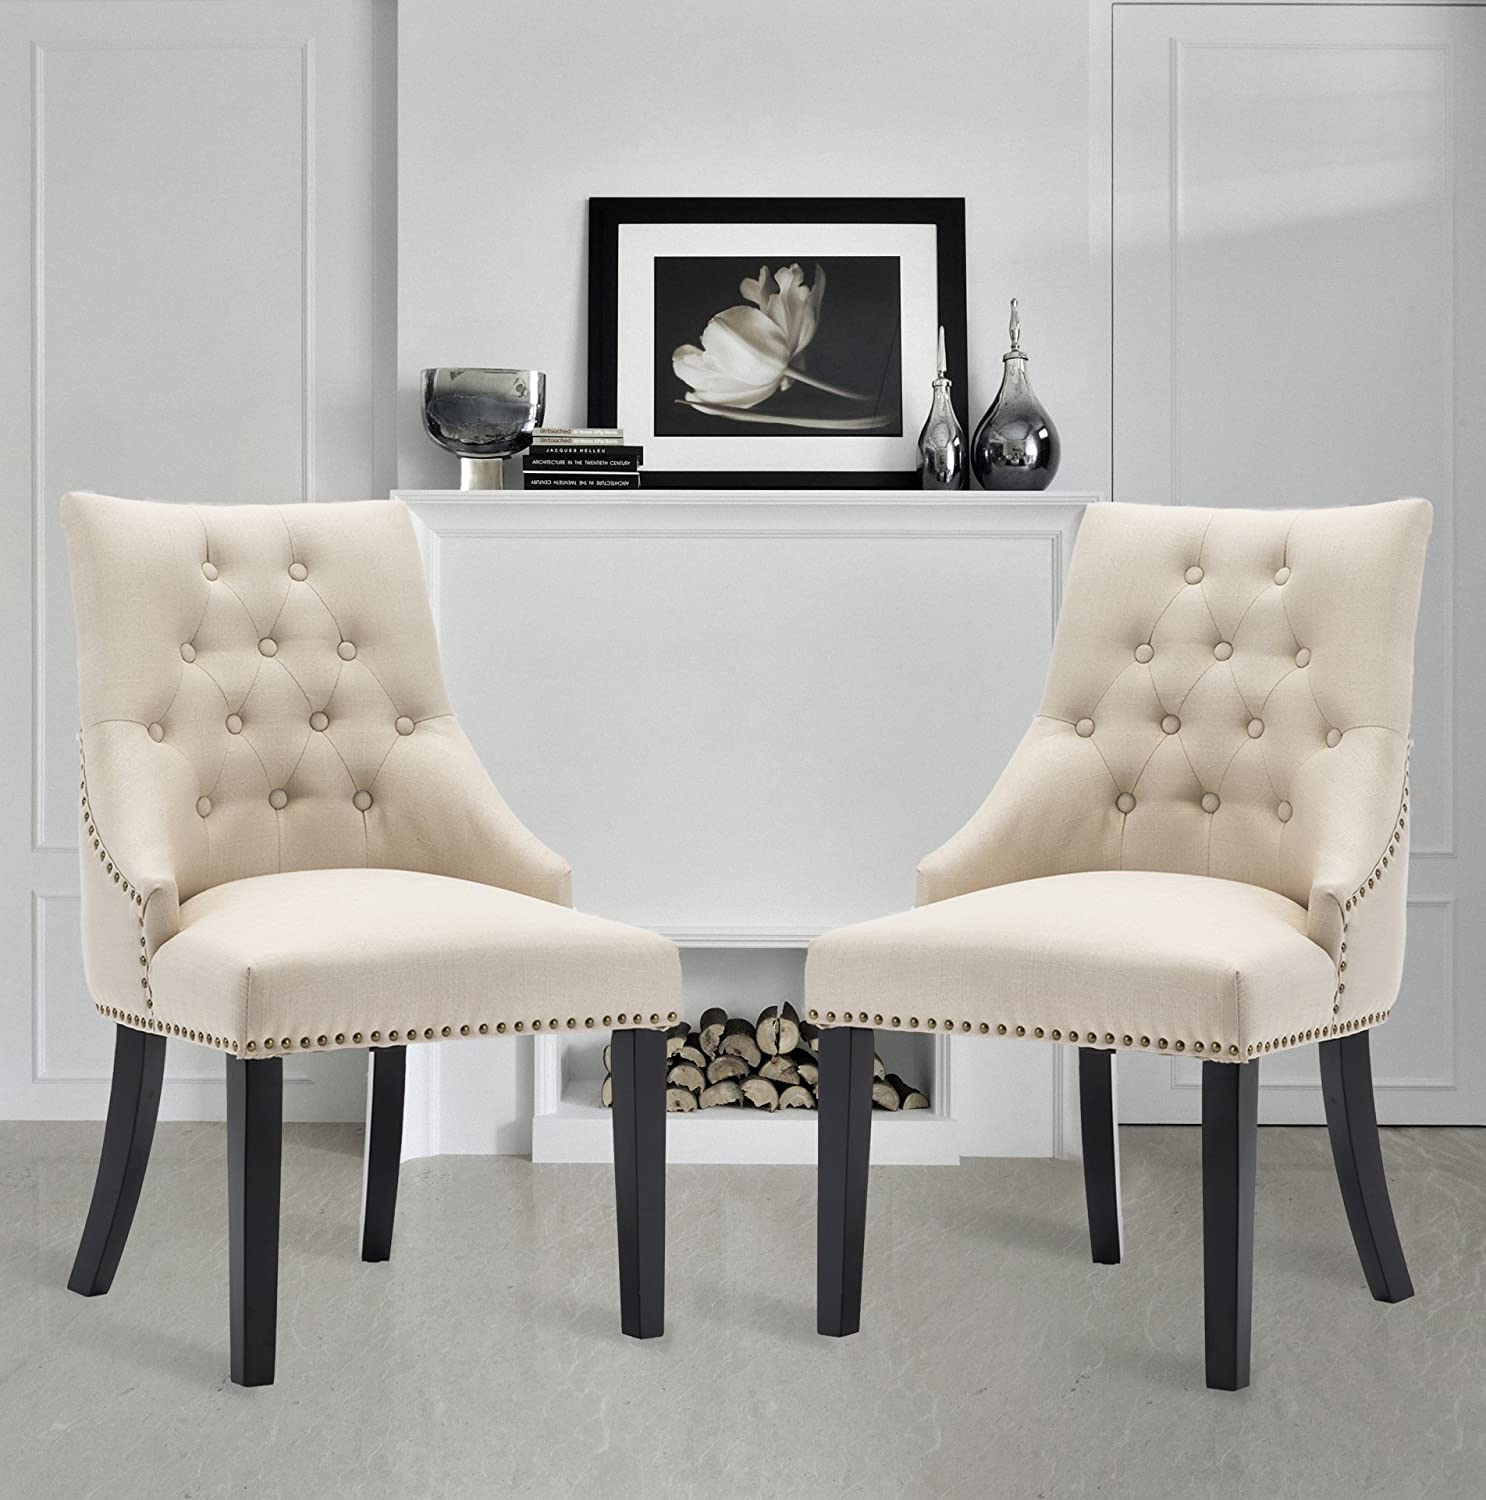 LSSBOUGHT Set of 2 Fabric Dining Chairs Leisure Padded Chairs with Black Solid Wooden Legs,Beige